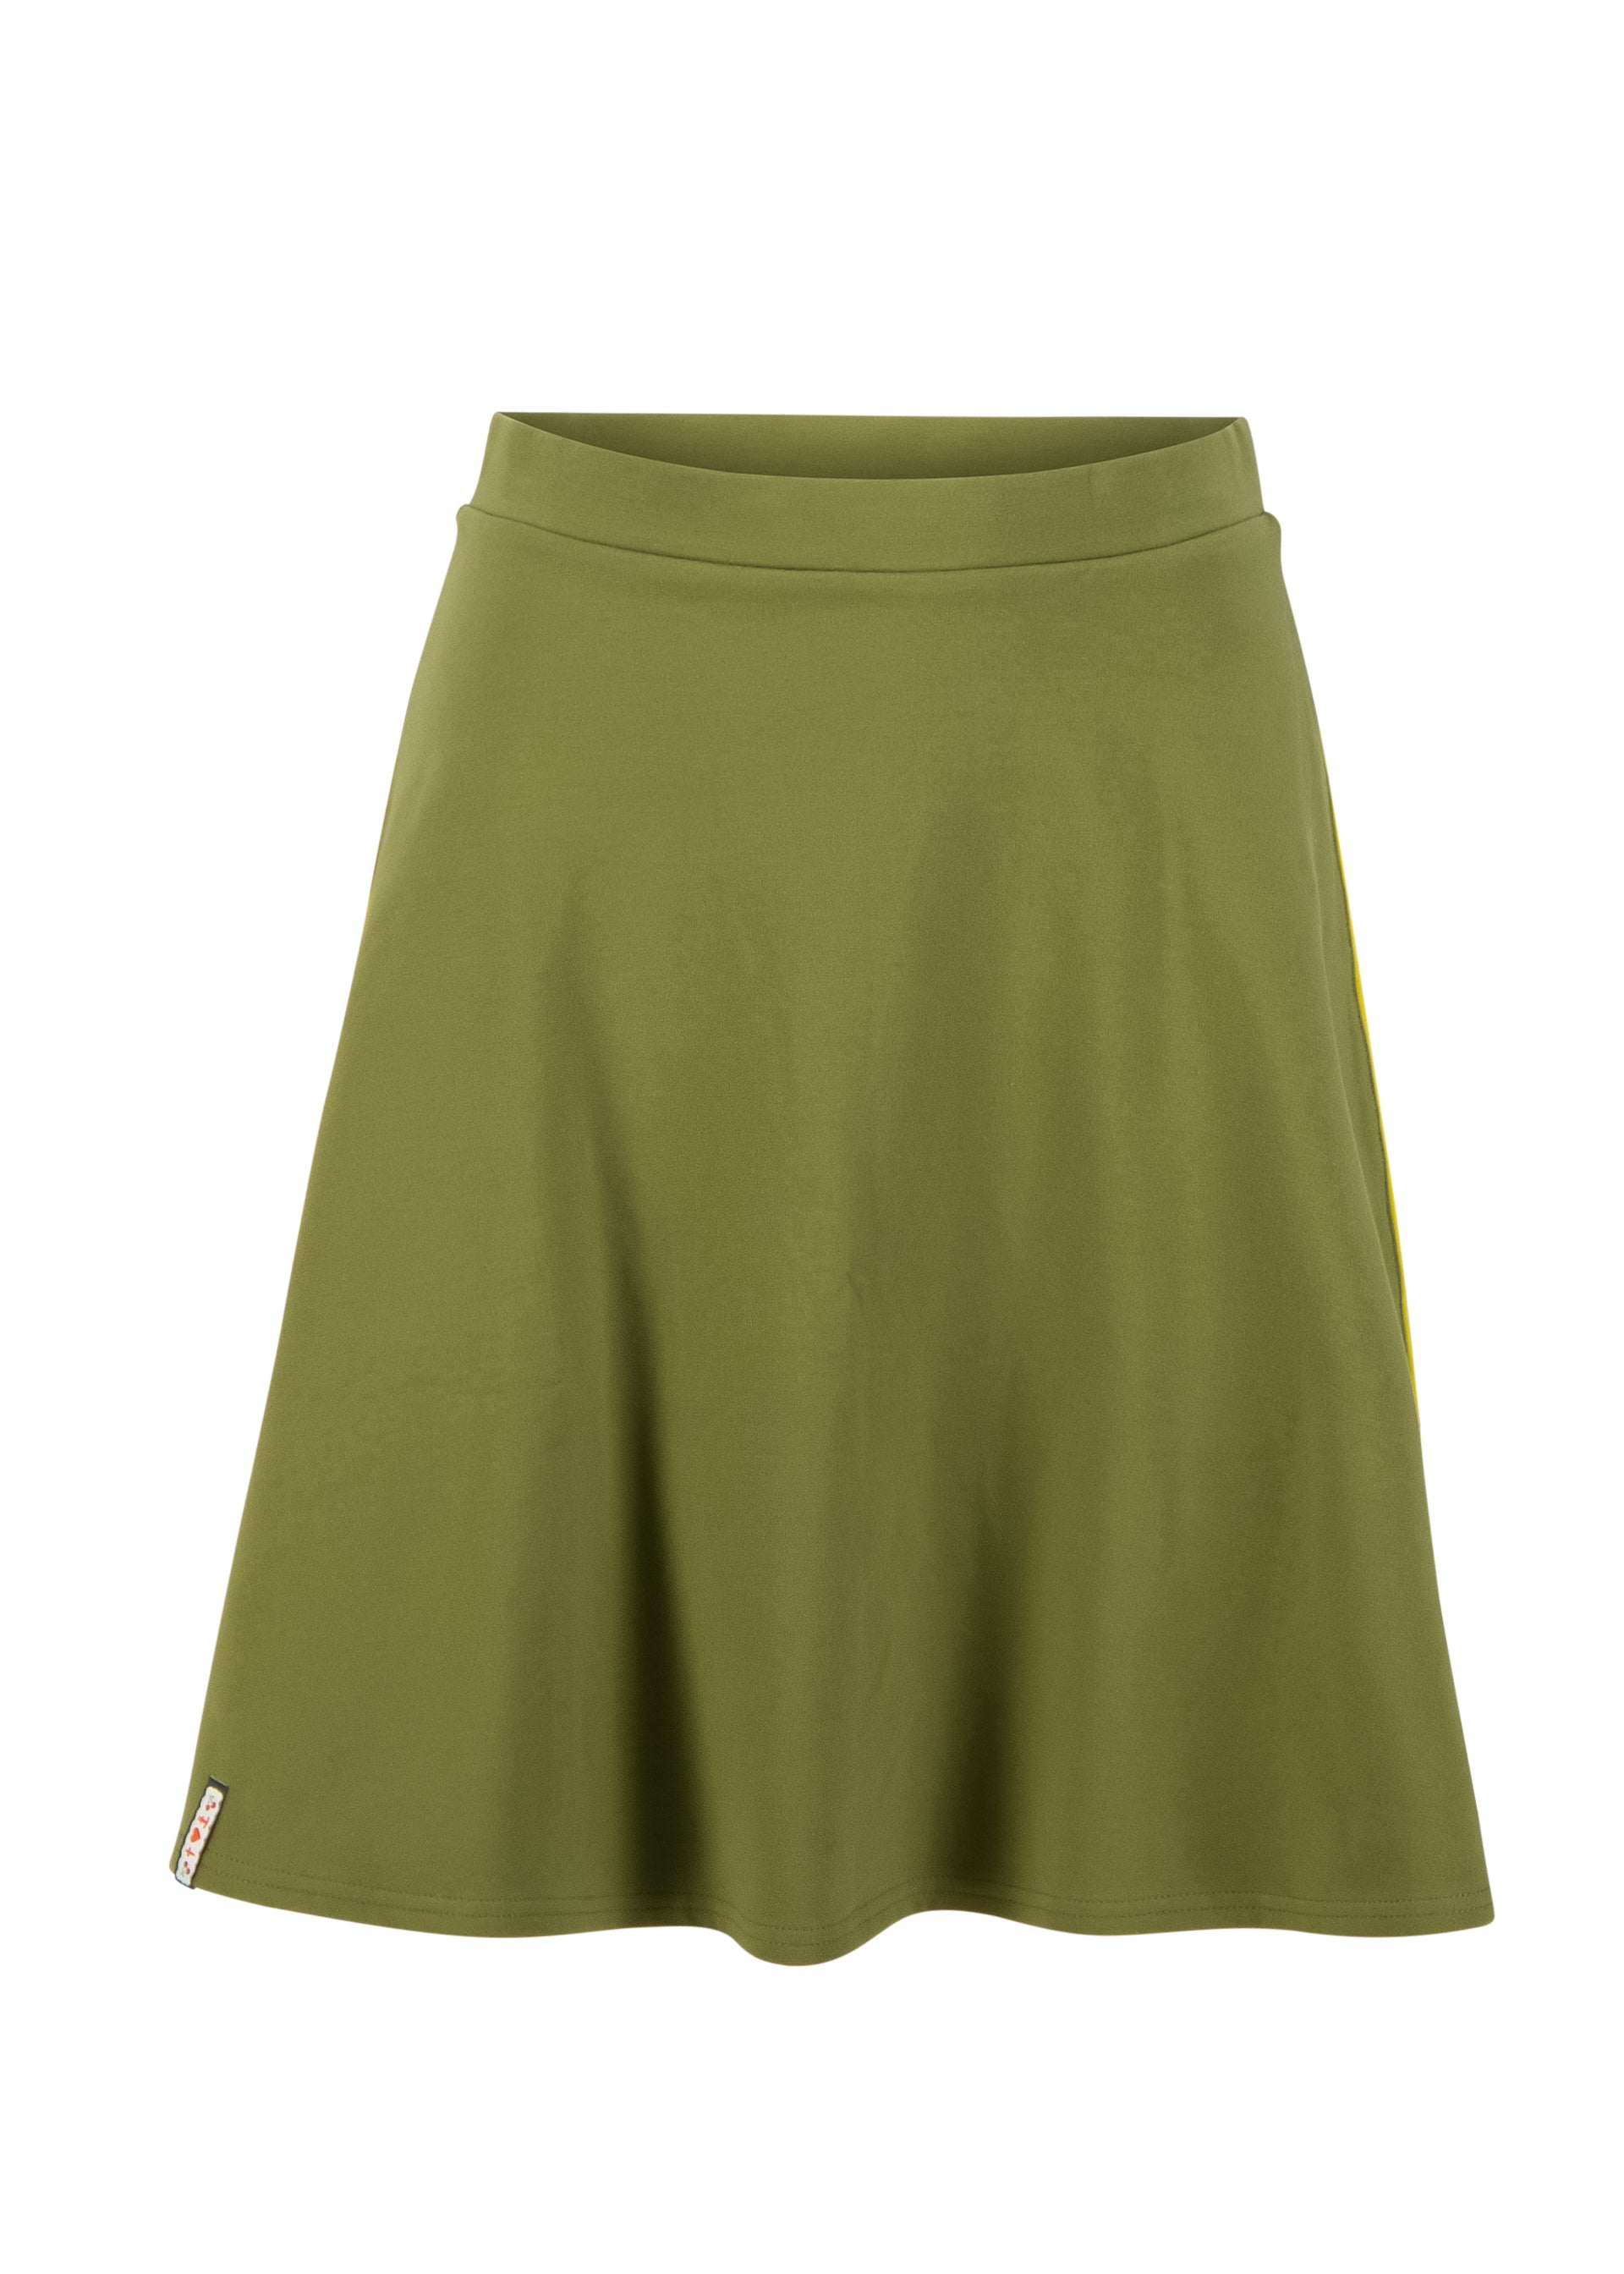 Damen Rock sporty sister skirt, khaki